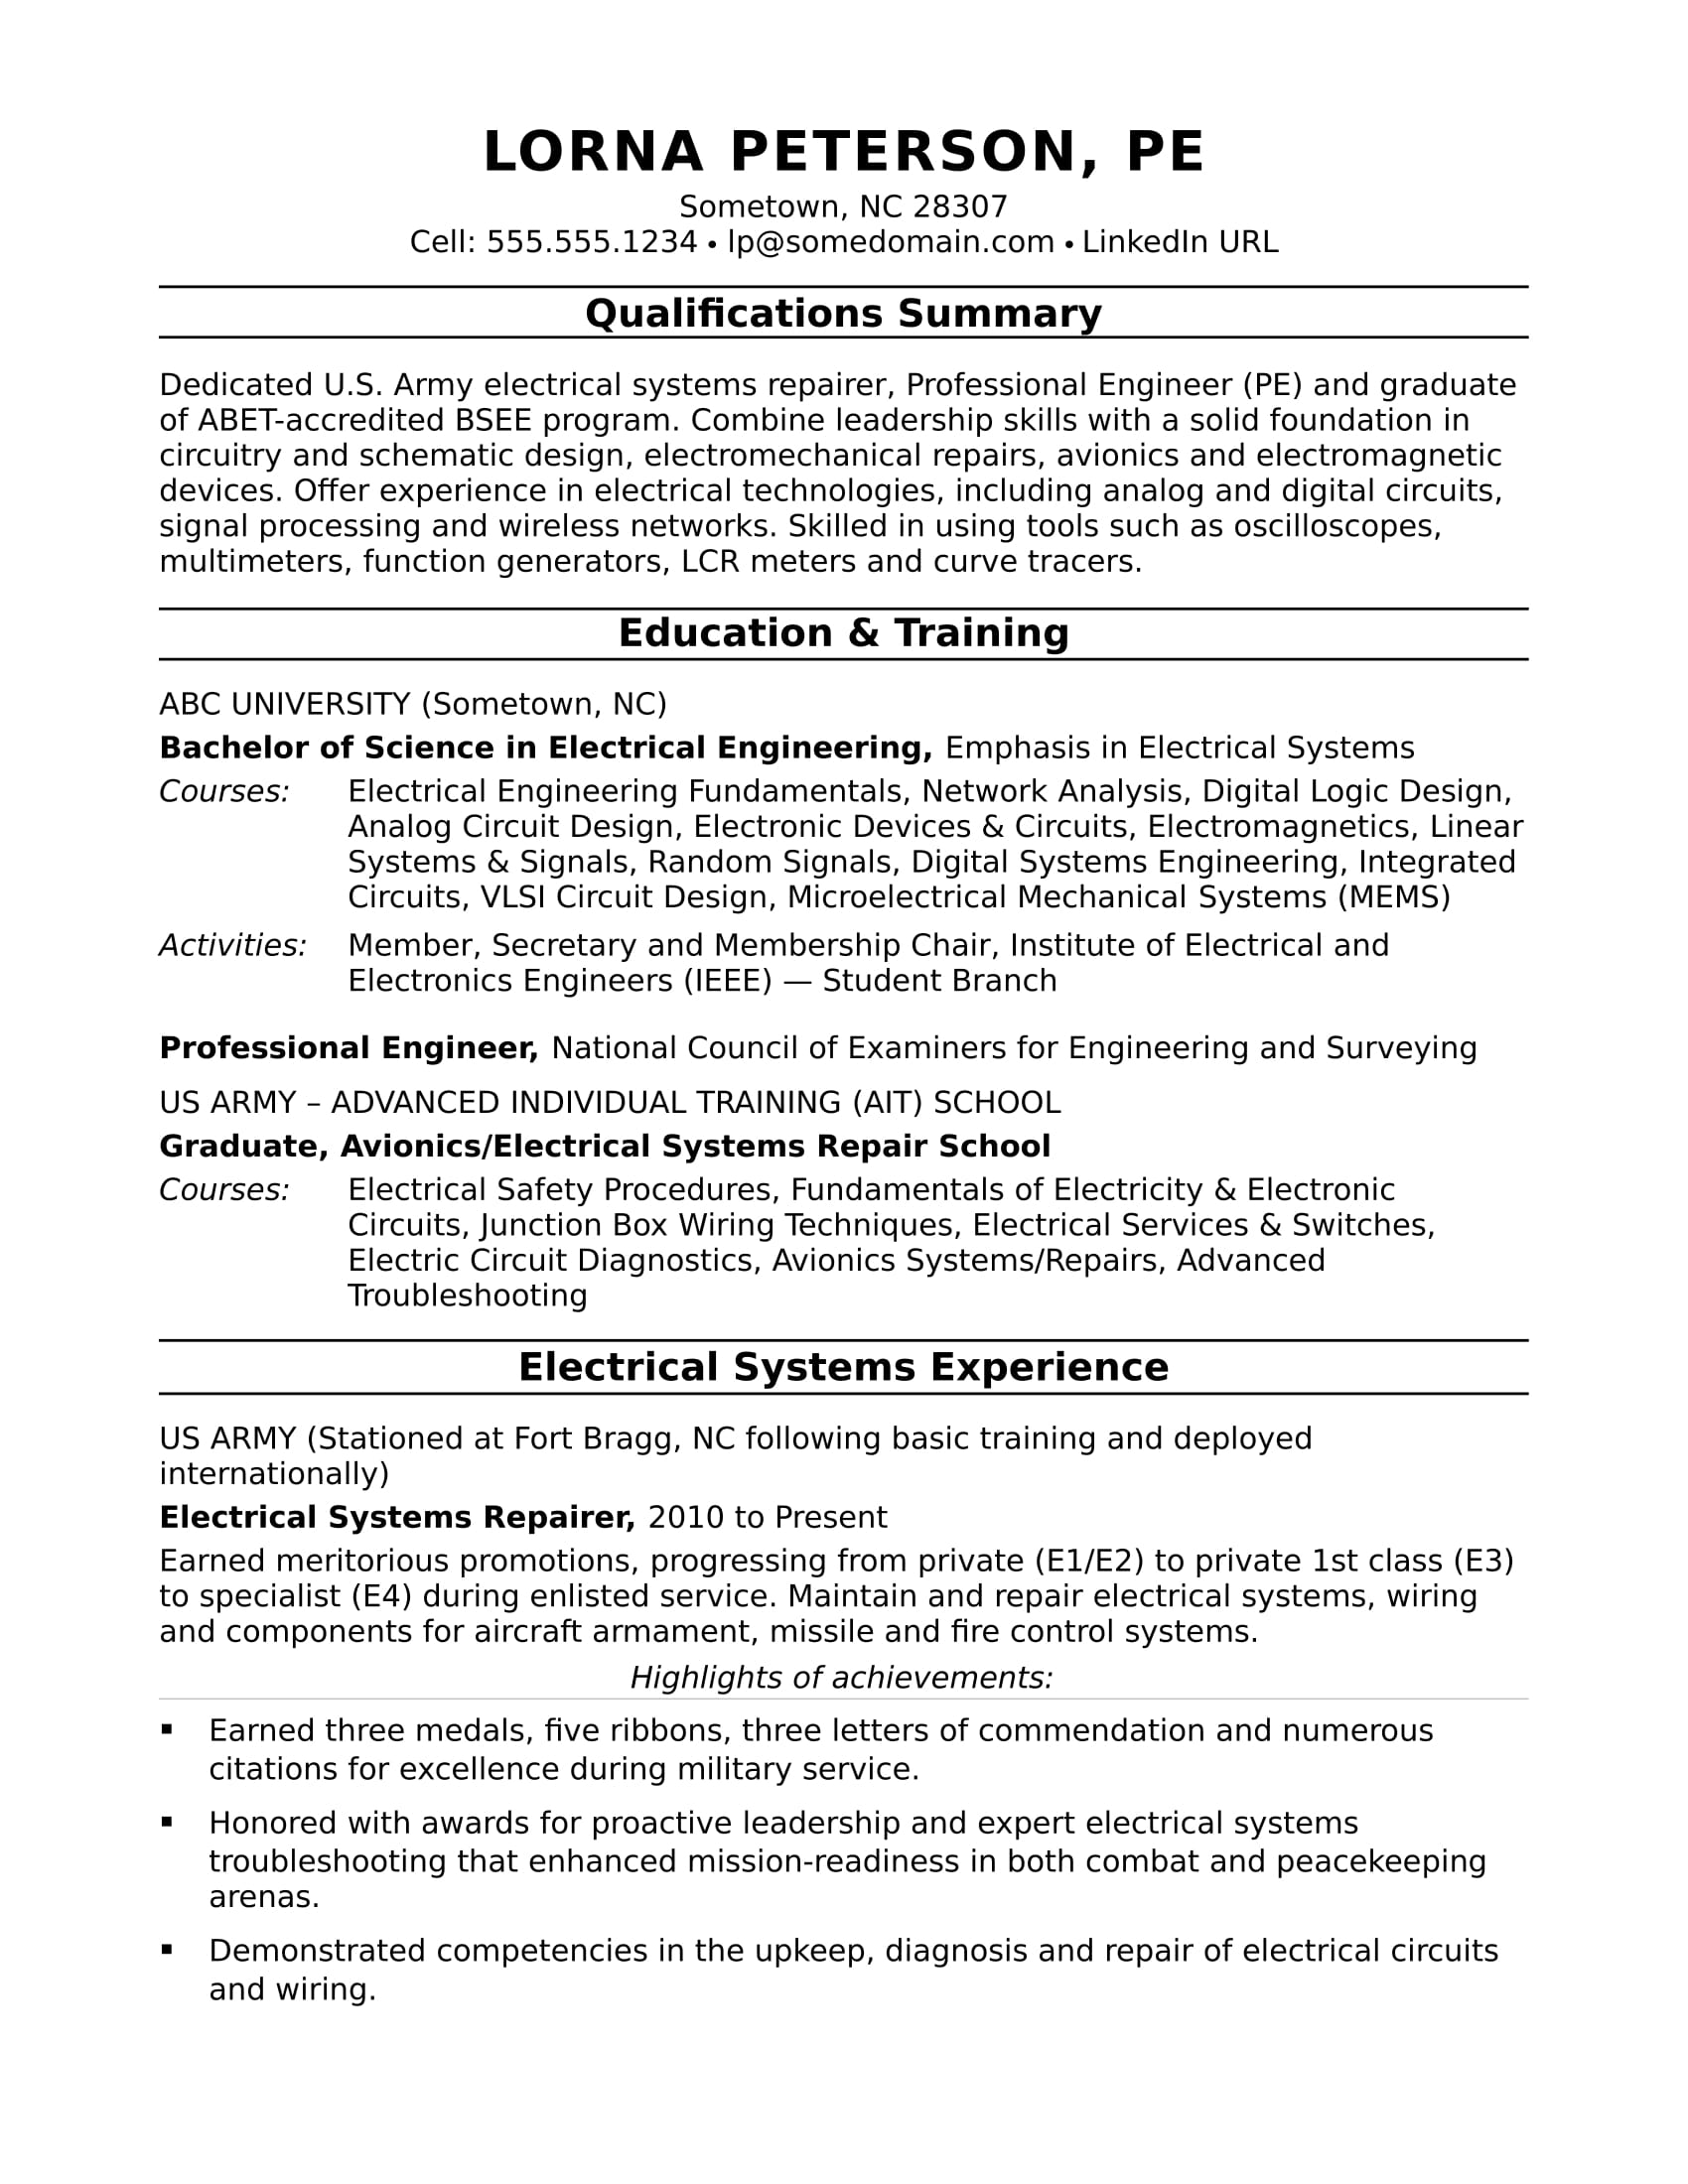 Sample Resume for a Midlevel Electrical Engineer